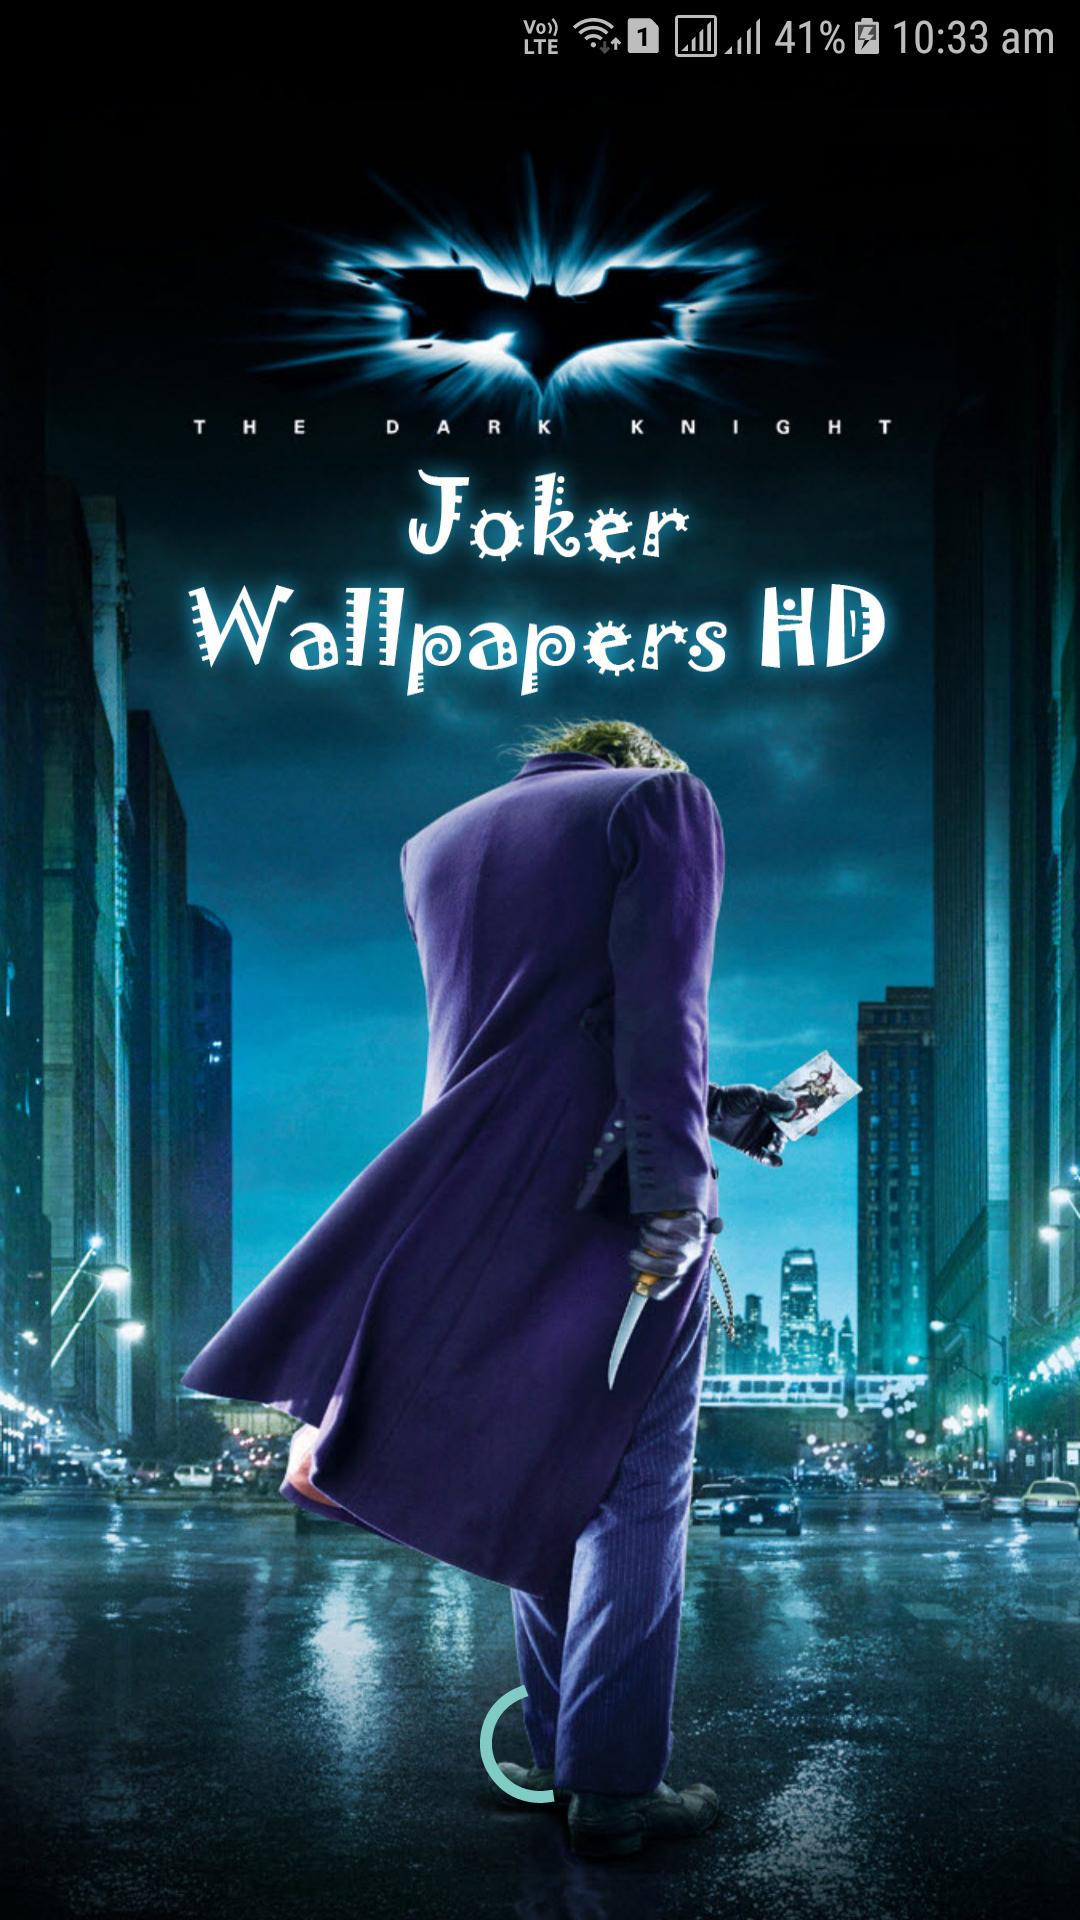 Joker Hd Wallpapers 2018 For Android Apk Download